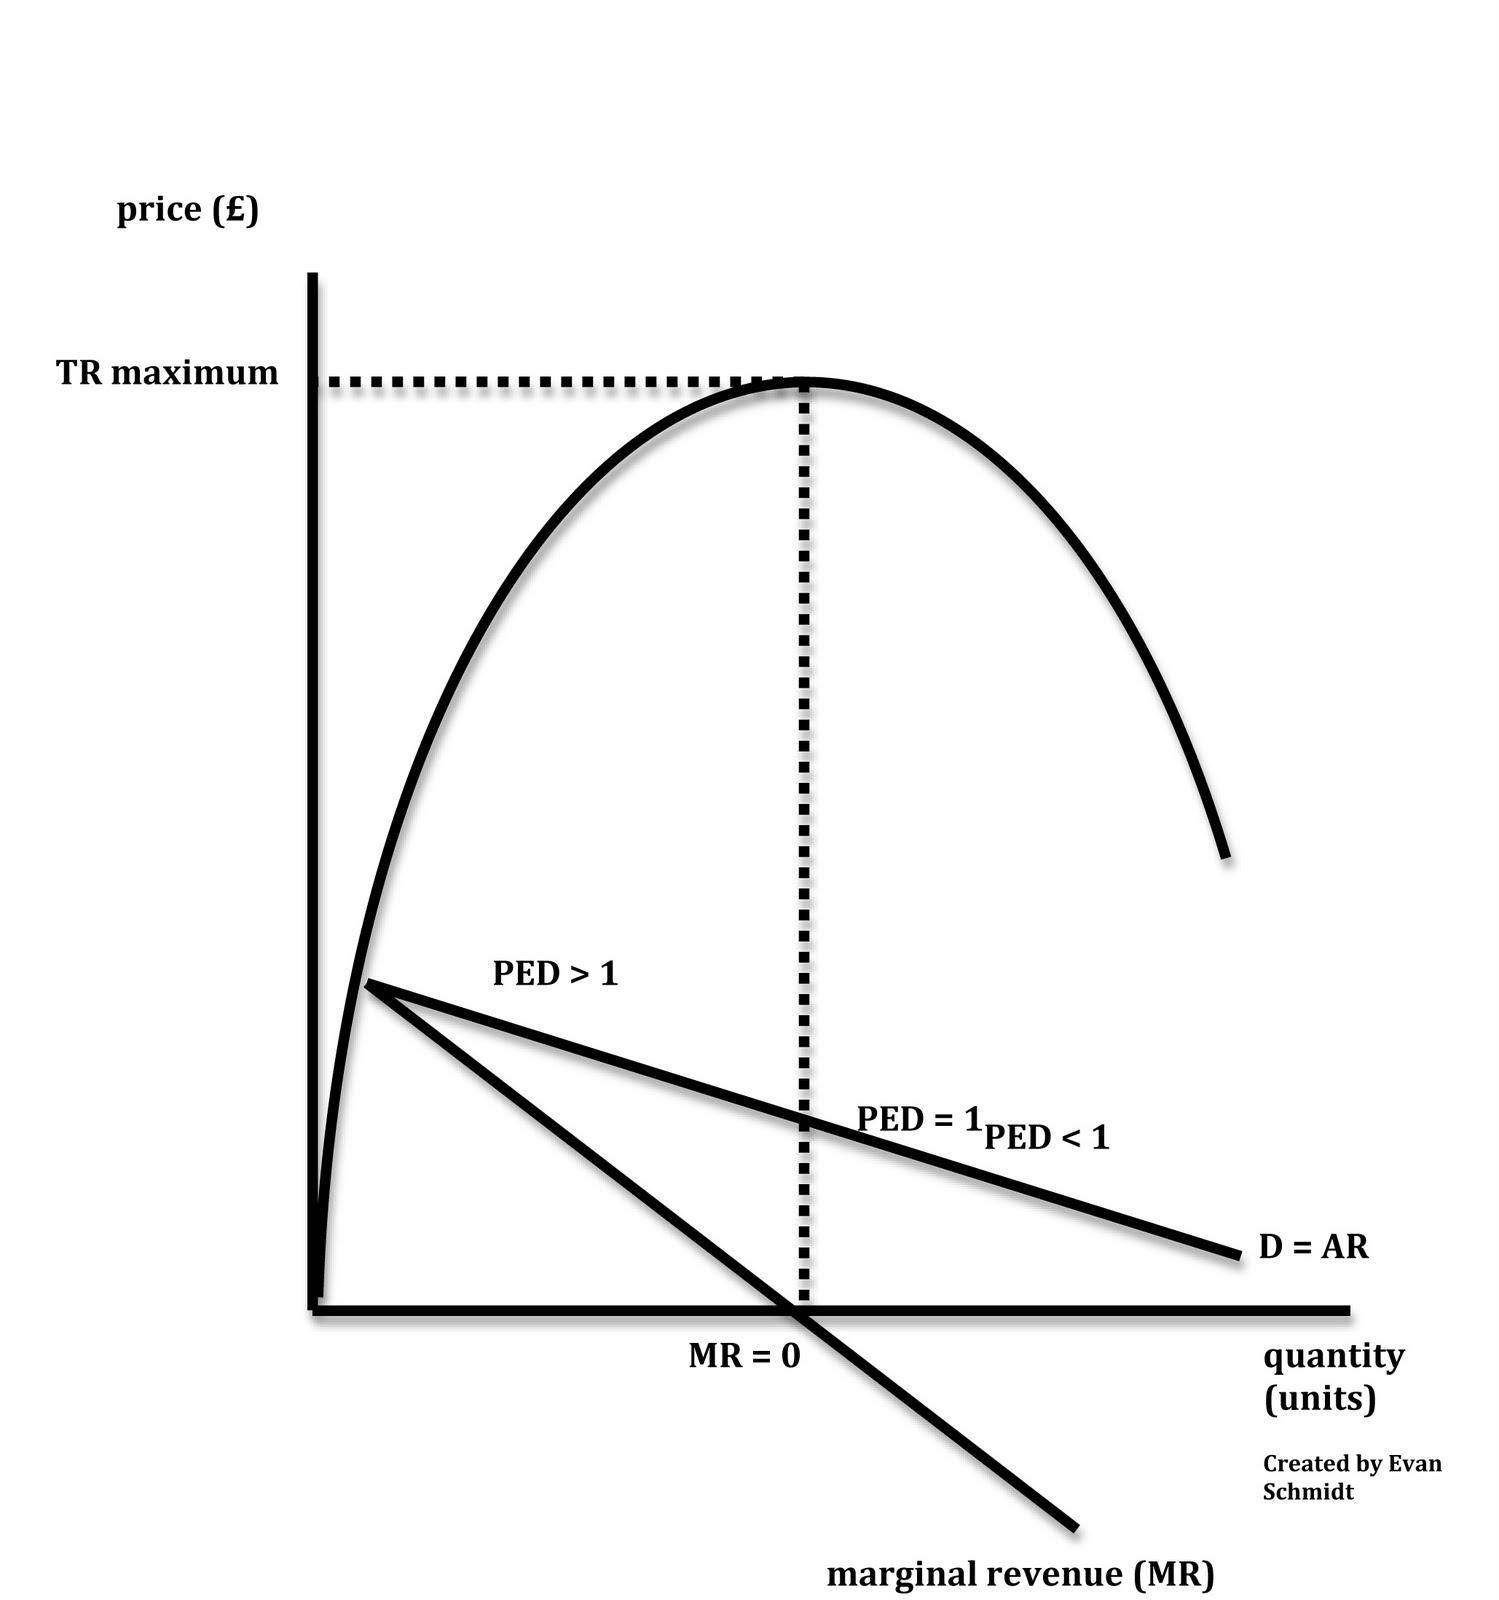 hight resolution of firms need to be aware of the price elasticity of demand ped for their products i e where they are on their demand curves to determine the level of